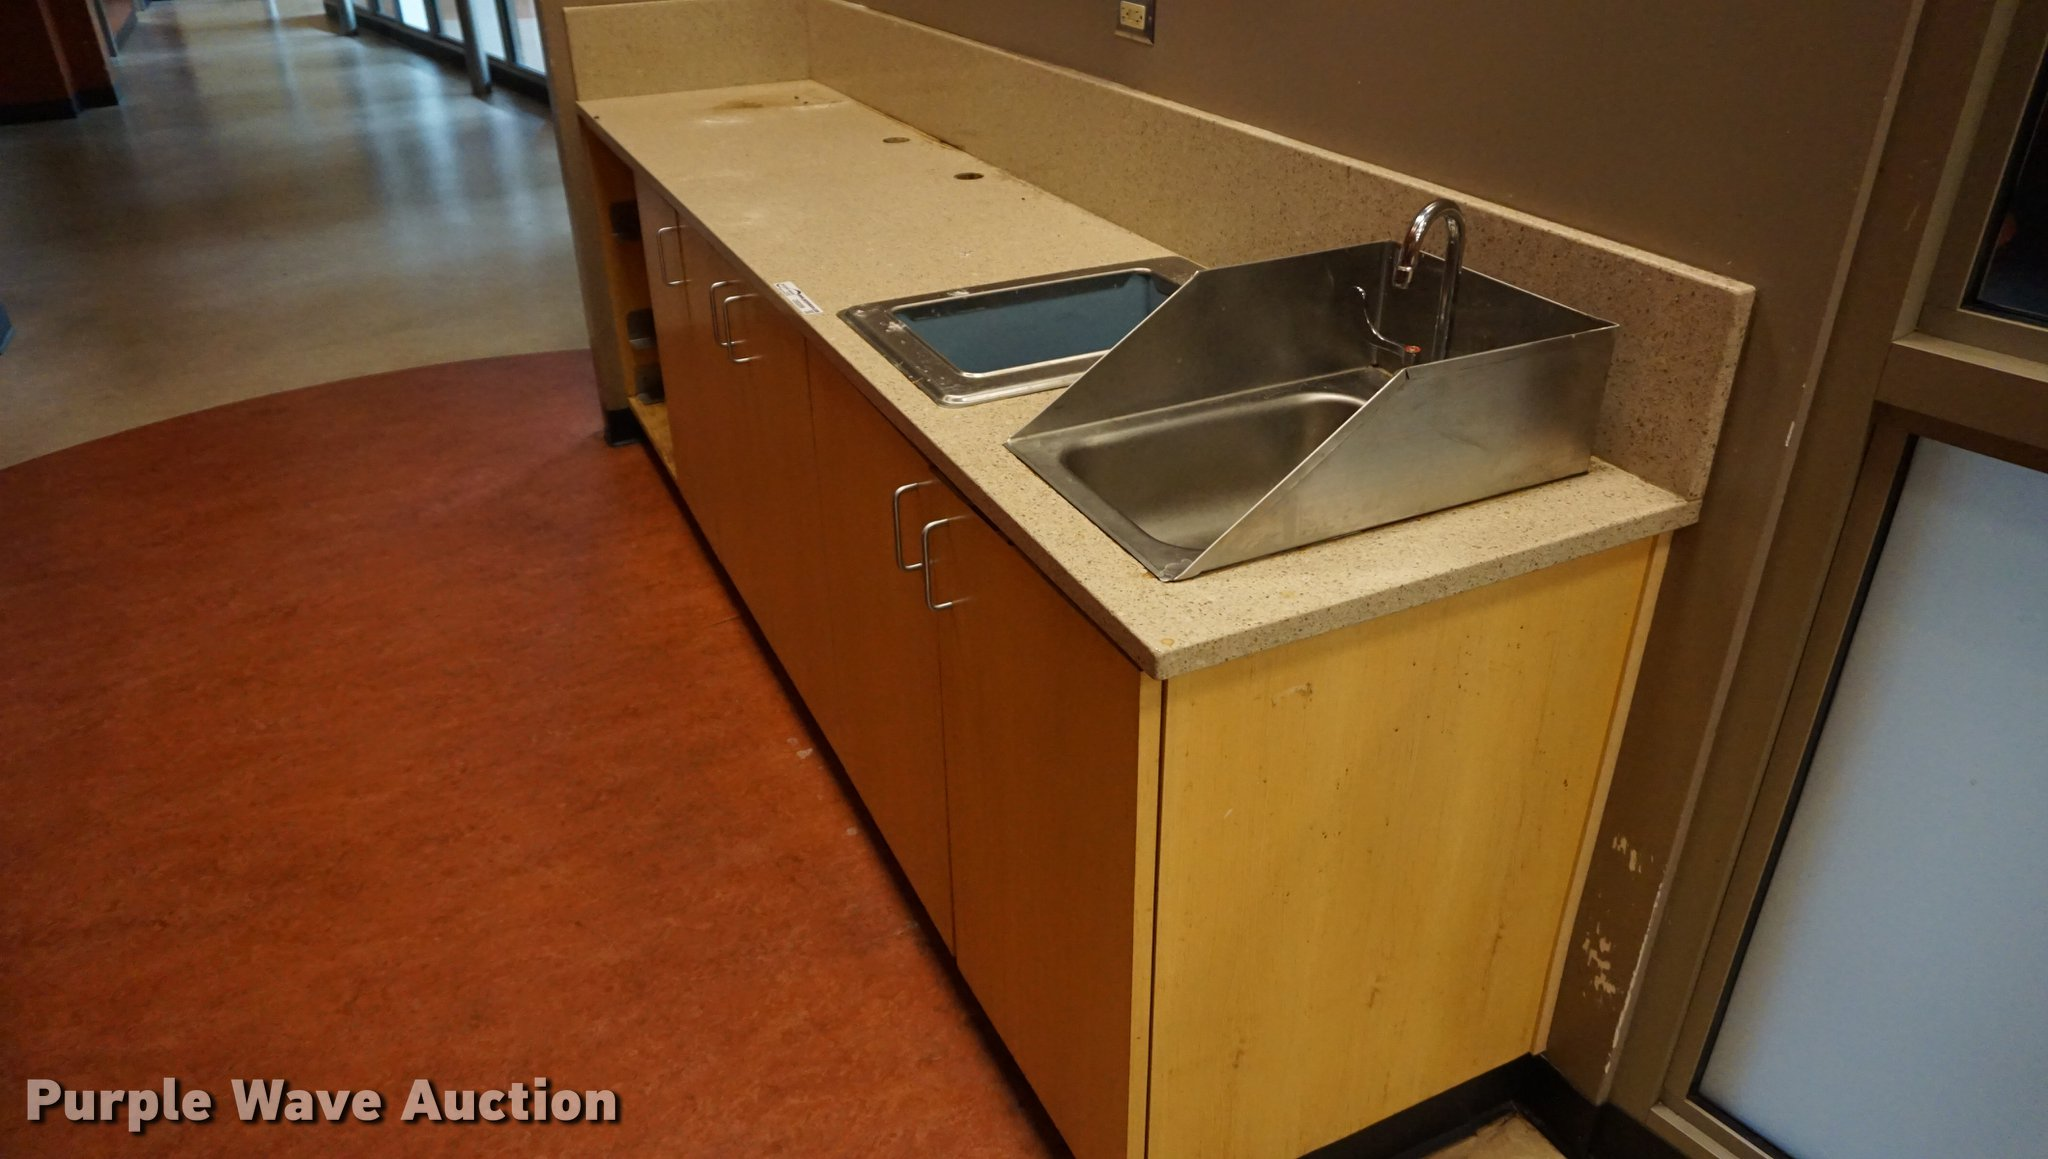 Counter with sink and ice bay   Item DS9399   SOLD! November... on undermount counter, vacation counter, modular kitchen counter, sinks that sit on top of counter, kitchen countertops, kitchen sinks 25 wide, up on the kitchen counter, kitchen light counter, kitchen floor counter, kitchen undercounter sinks, kitchen marble counter, kitchen pantry counter, mobile kitchen counter, kitchen stone counter, kitchen burn counter, kitchen bench counter, kitchen chairs counter, house kitchen counter, kitchen area, mini kitchen counter,